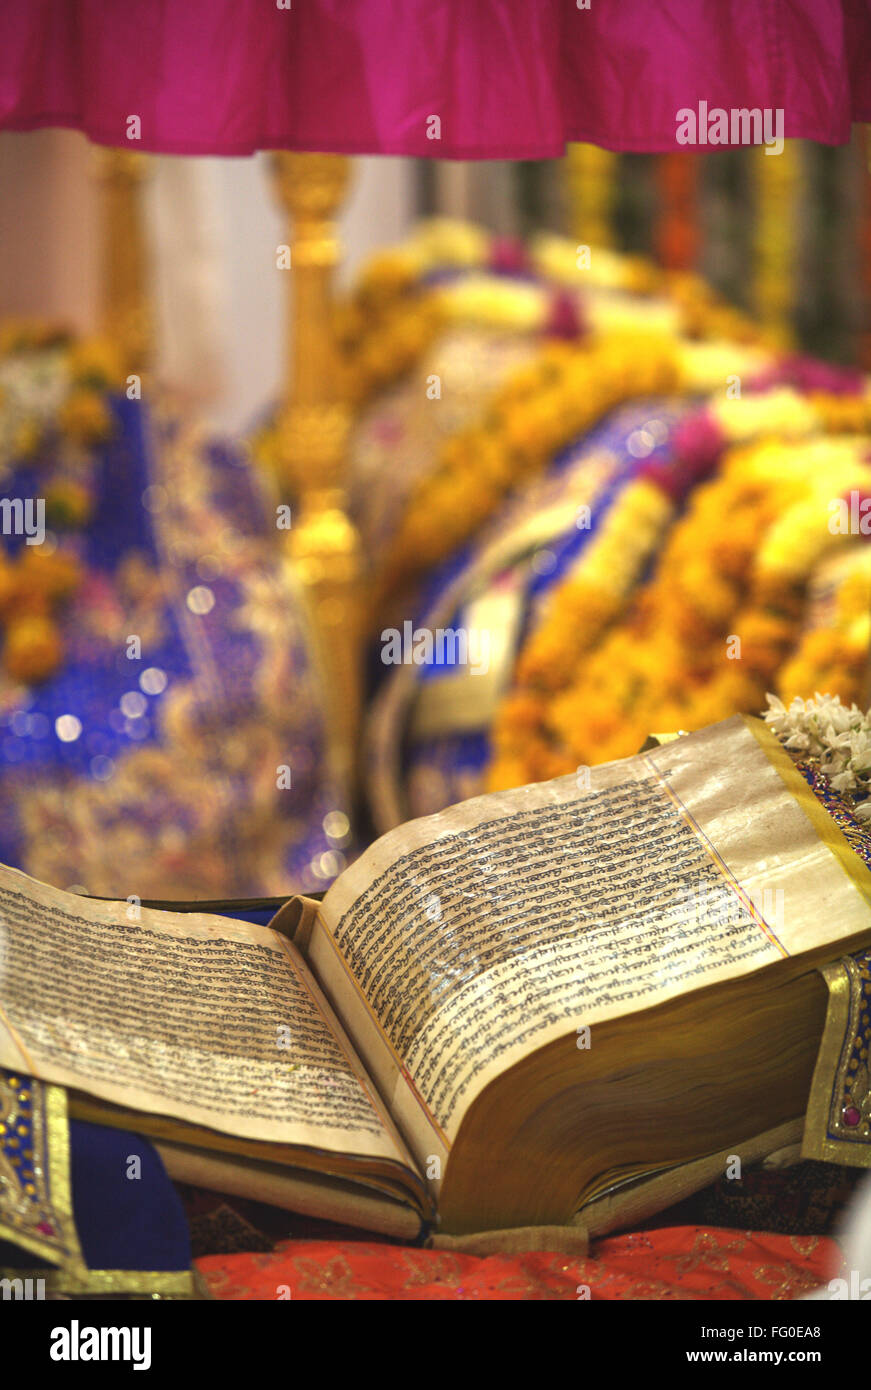 Guru Granth Sahib Holy Book Stock Photos Guru Granth Sahib Holy